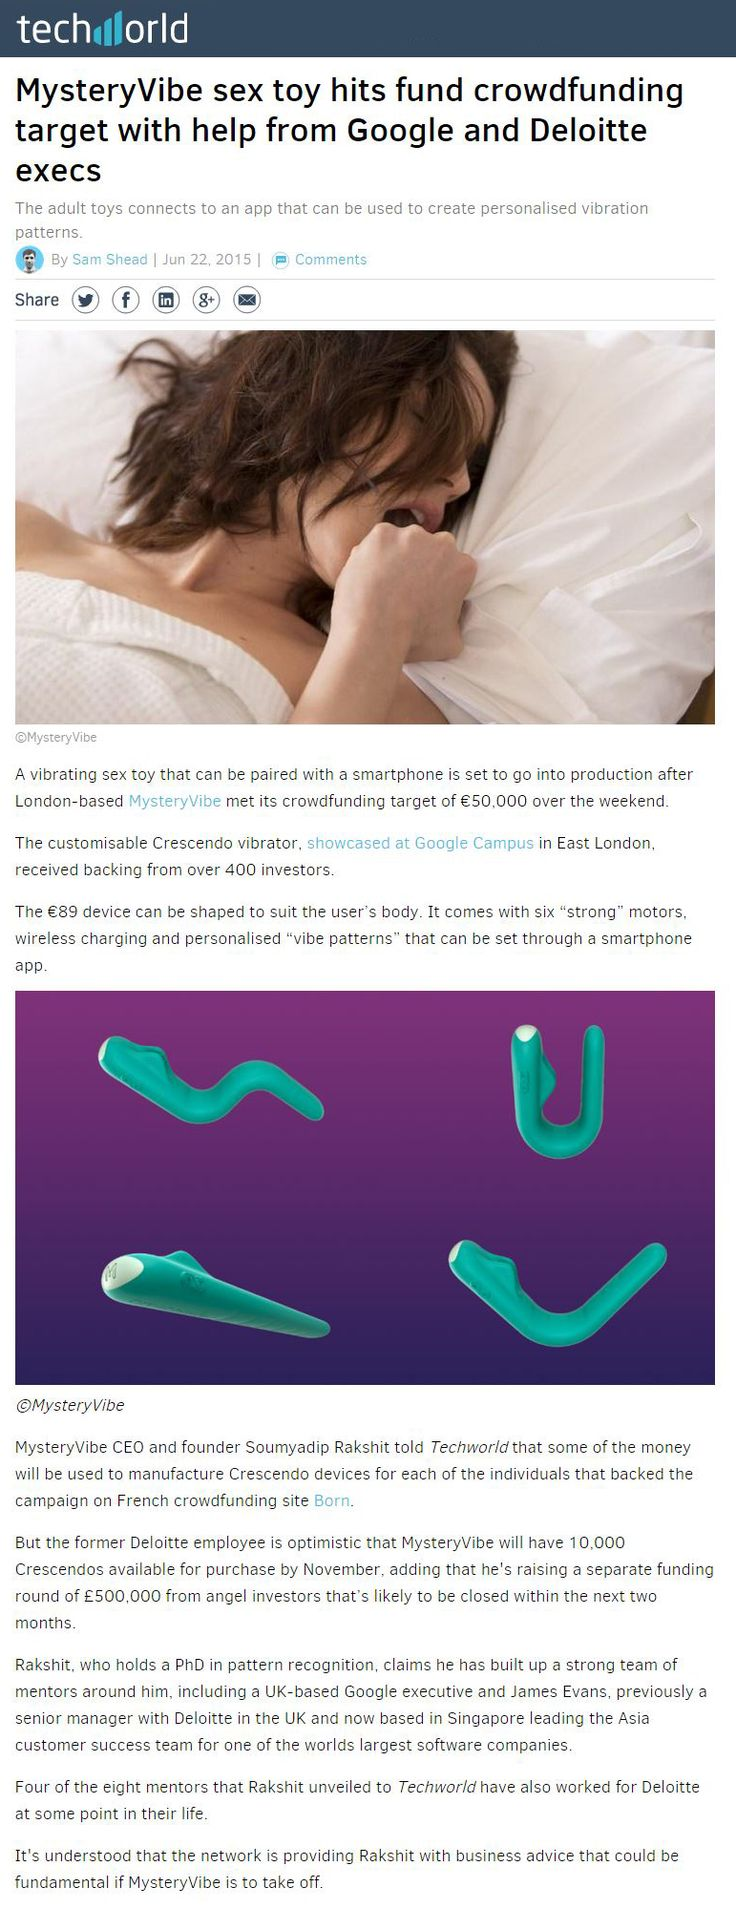 Techworld - MysteryVibe sex toy hits fund crowdfunding target with help  from Google and Deloitte execs (22 June 2015) | MysteryVibe in the News |  Pinterest ...